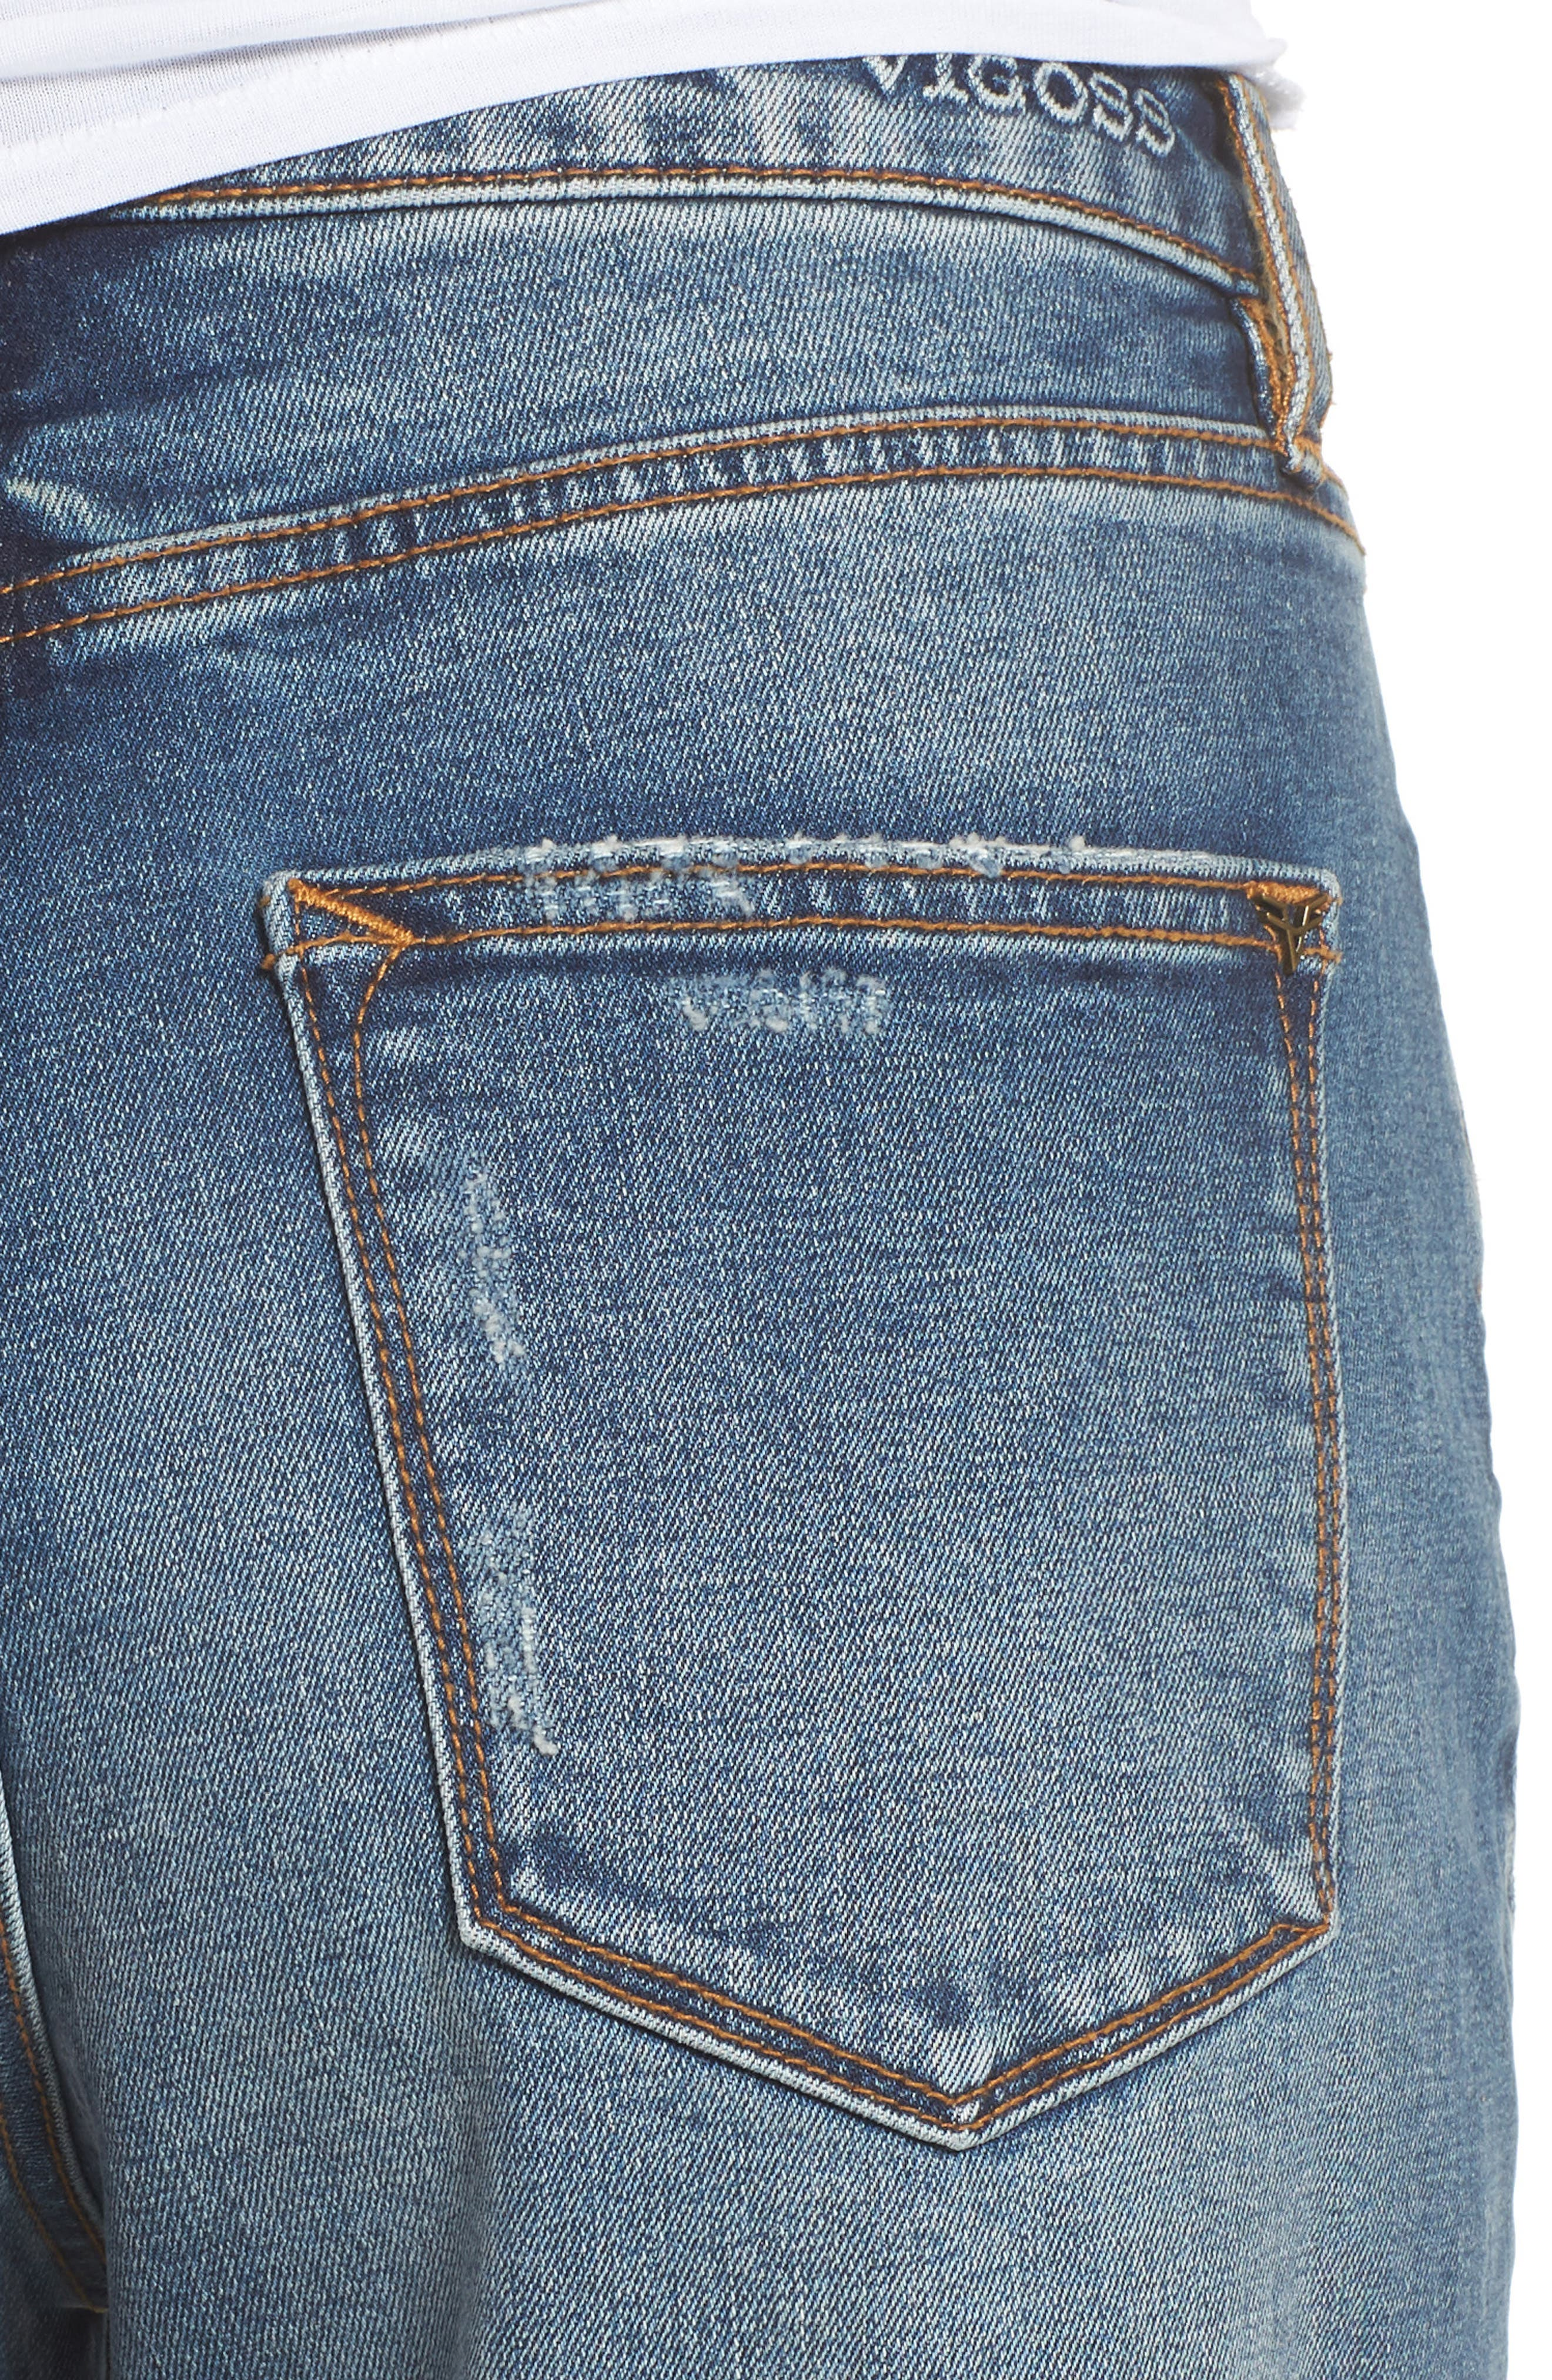 Friday Distressed Tapered Boyfriend Jeans,                             Alternate thumbnail 4, color,                             426